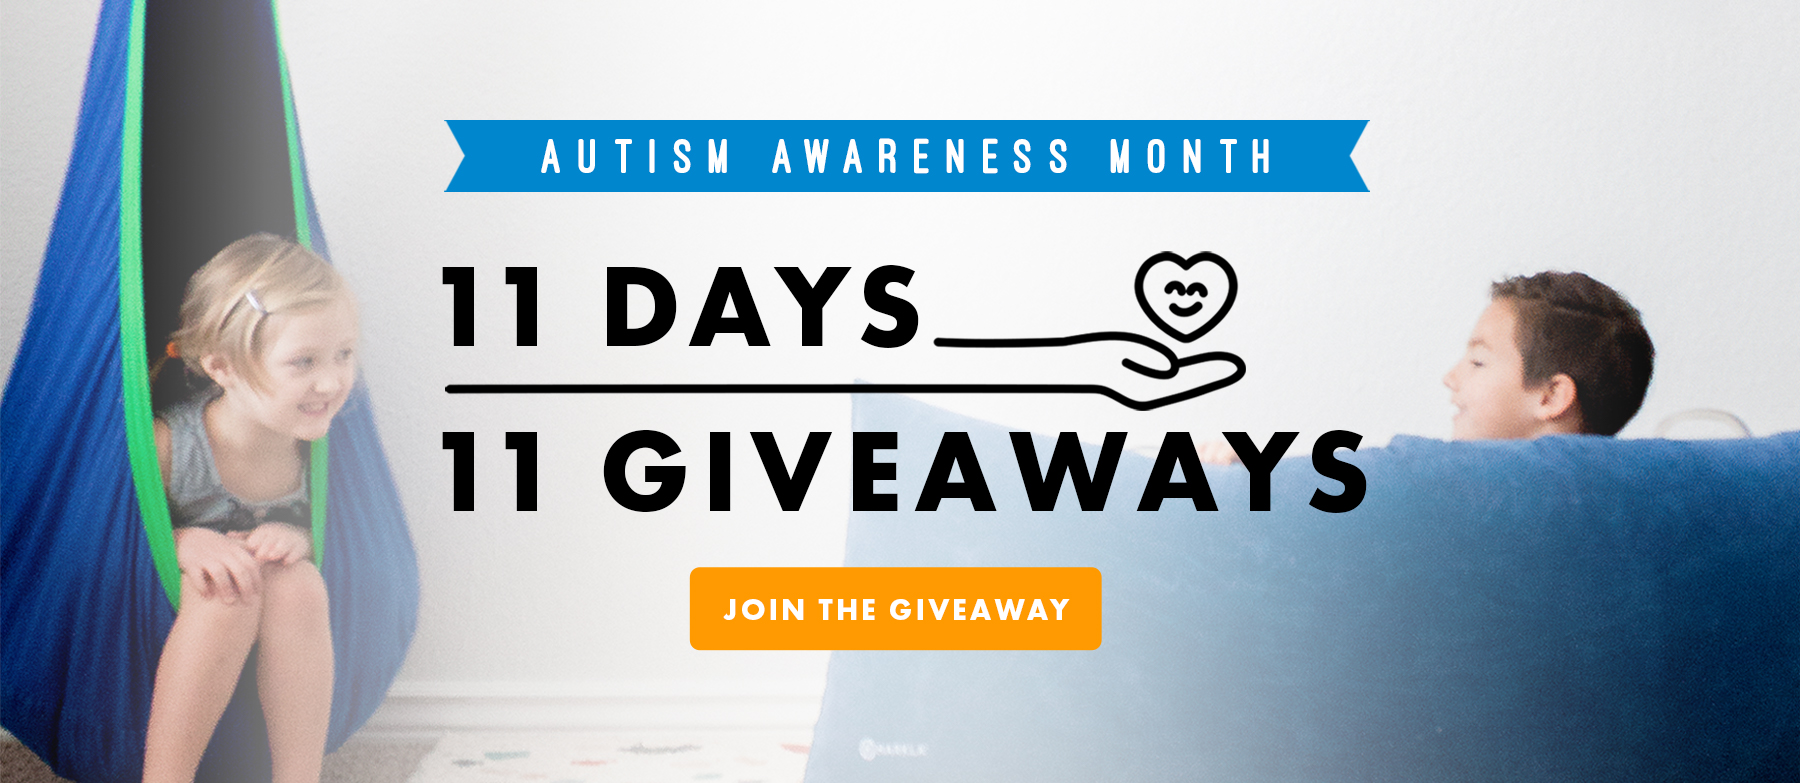 Autism Awareness Month Sweepstakes